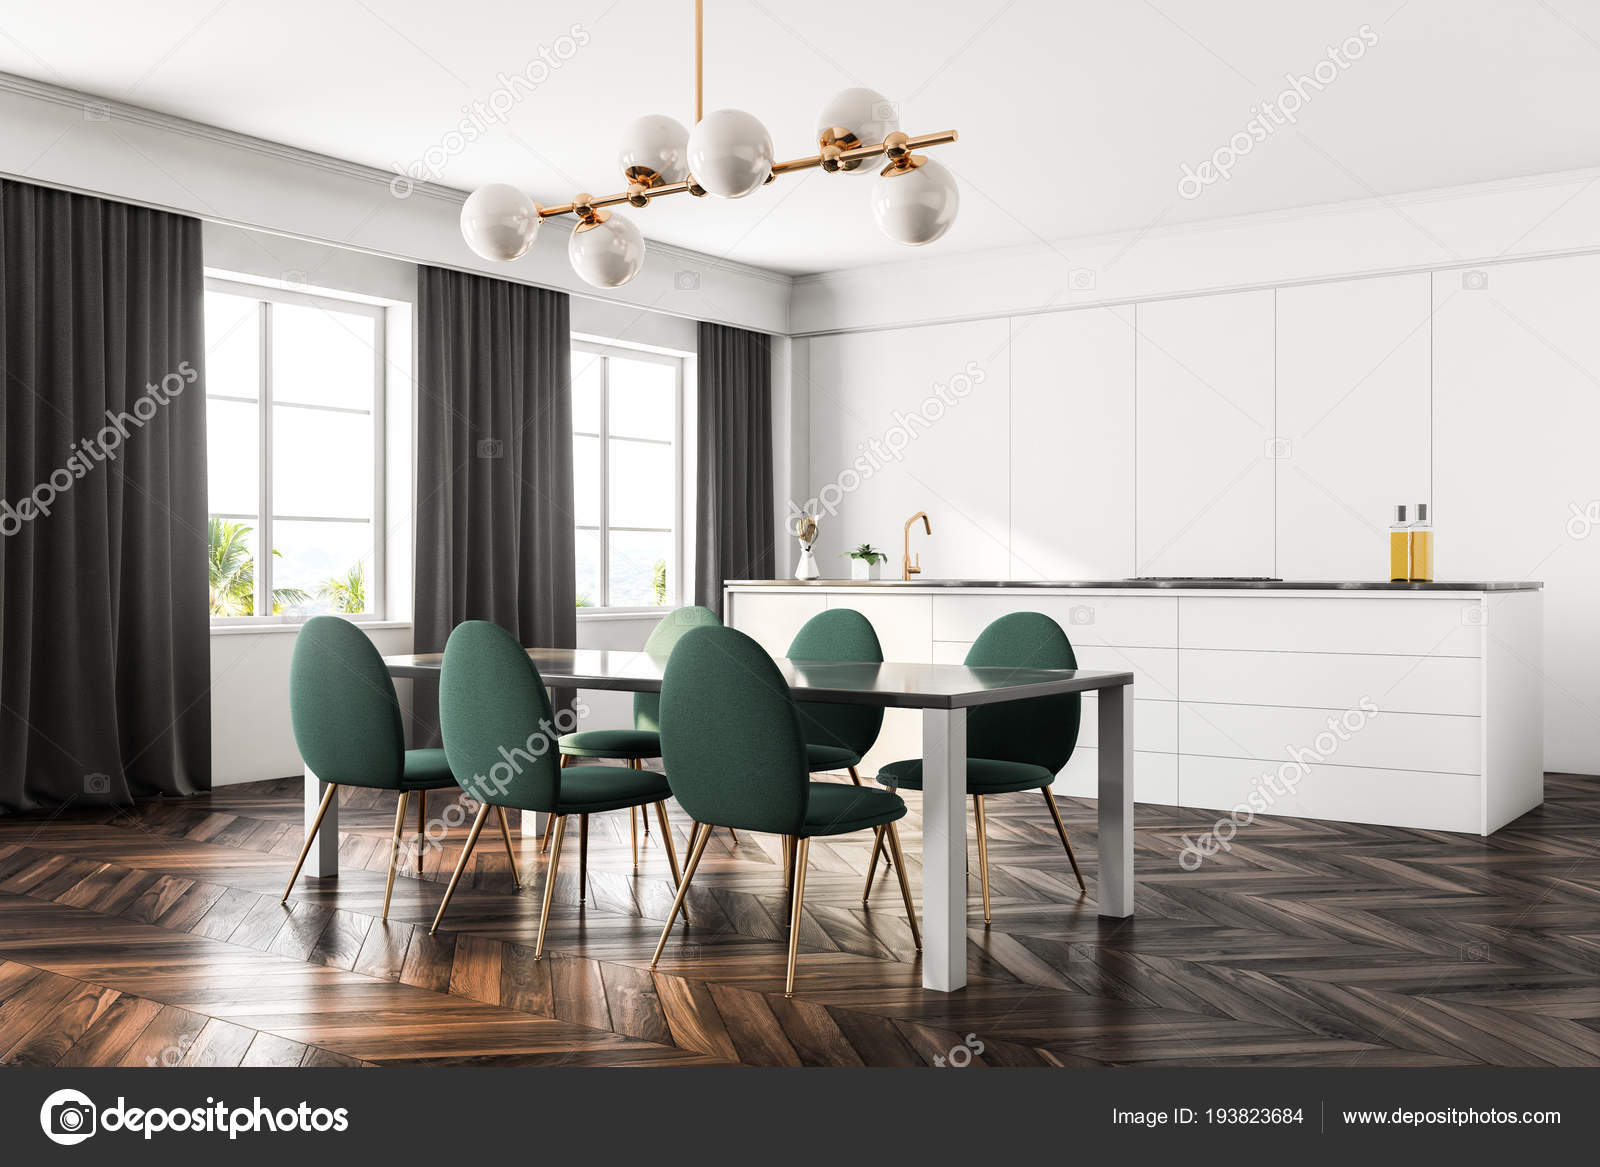 Luxury Dining Room Kitchen Interior Dark Wooden Floor White Walls